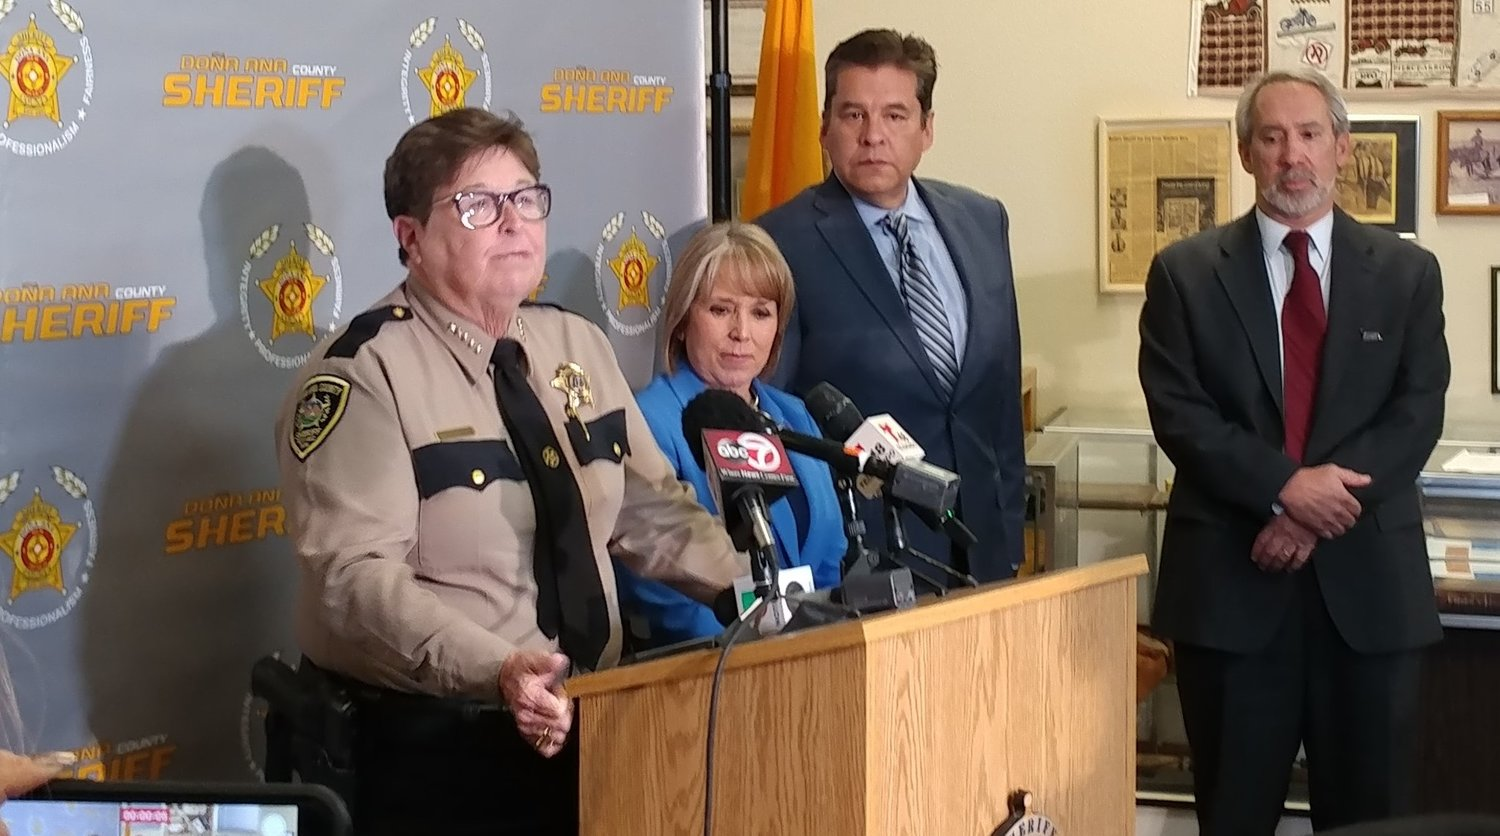 Left to right are Doña Ana County Sheriff Kim Stewart, Gov. Michelle Lujan Grisham, state Sen. Joseph Cervantes, D-Doña Ana, and state Rep. Daymon Ely, D-Bernalillo/Sandoval, at the county sheriff's office Wednesday, Jan 8.